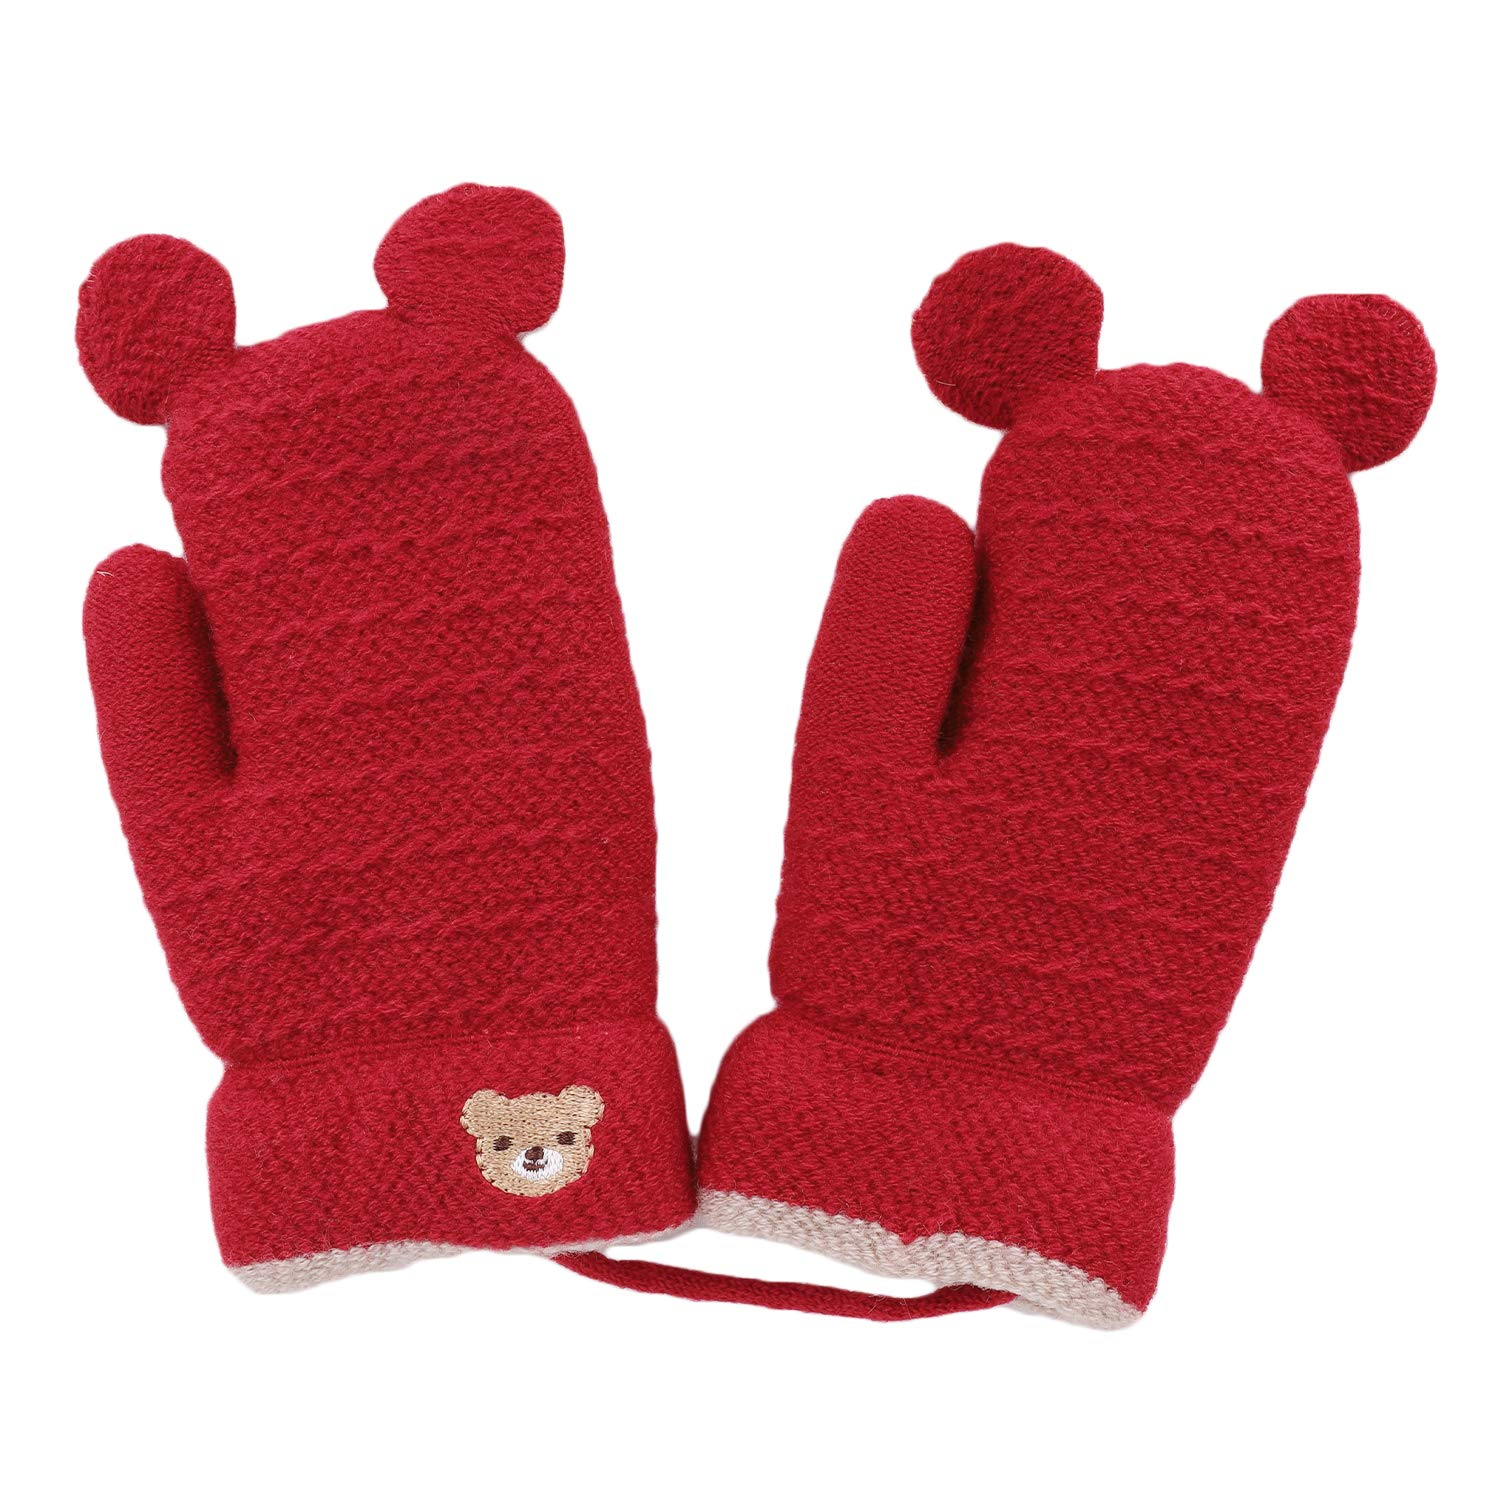 Kids Baby Cute Bear Gloves Knitted Hang Neck Mittens Children Winter Warm Mitten Thicken Plush-lined Full Finger Glove with Rope Toddler Boy Girl Thermal Hand Warmer Mitten Aged 1-4 Years Xmas Gift